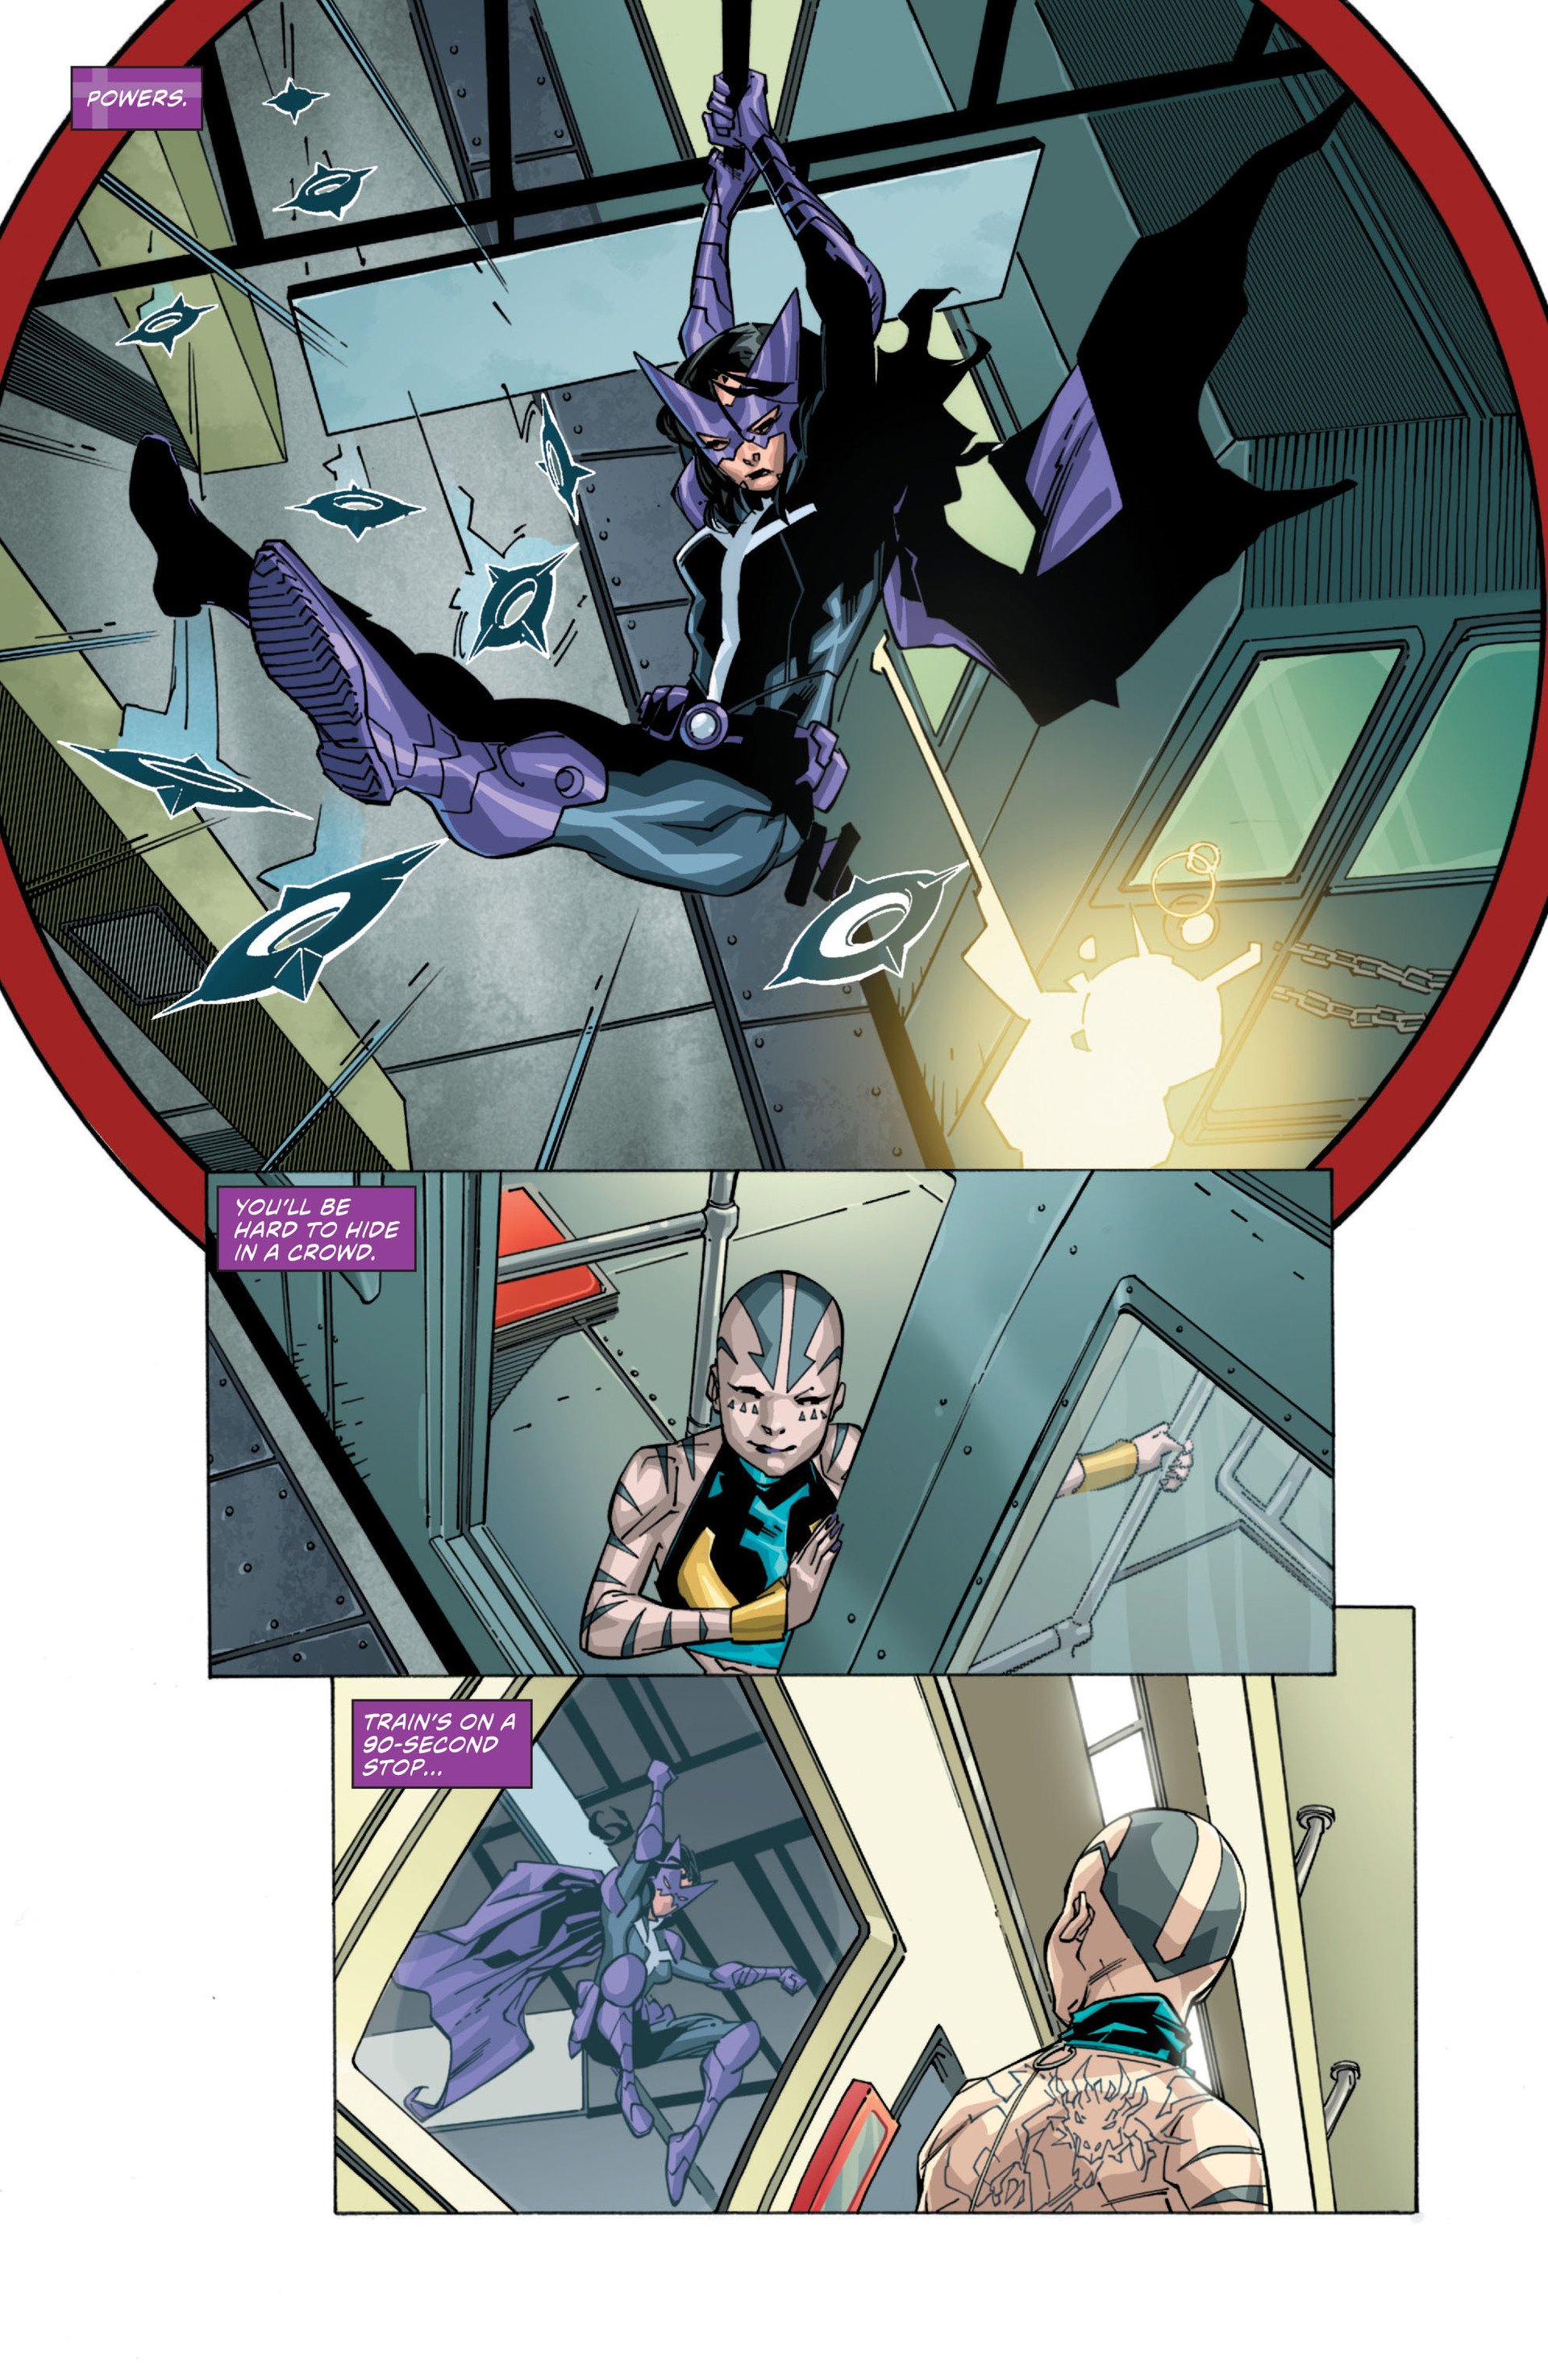 Read online Worlds' Finest comic -  Issue #16 - 9